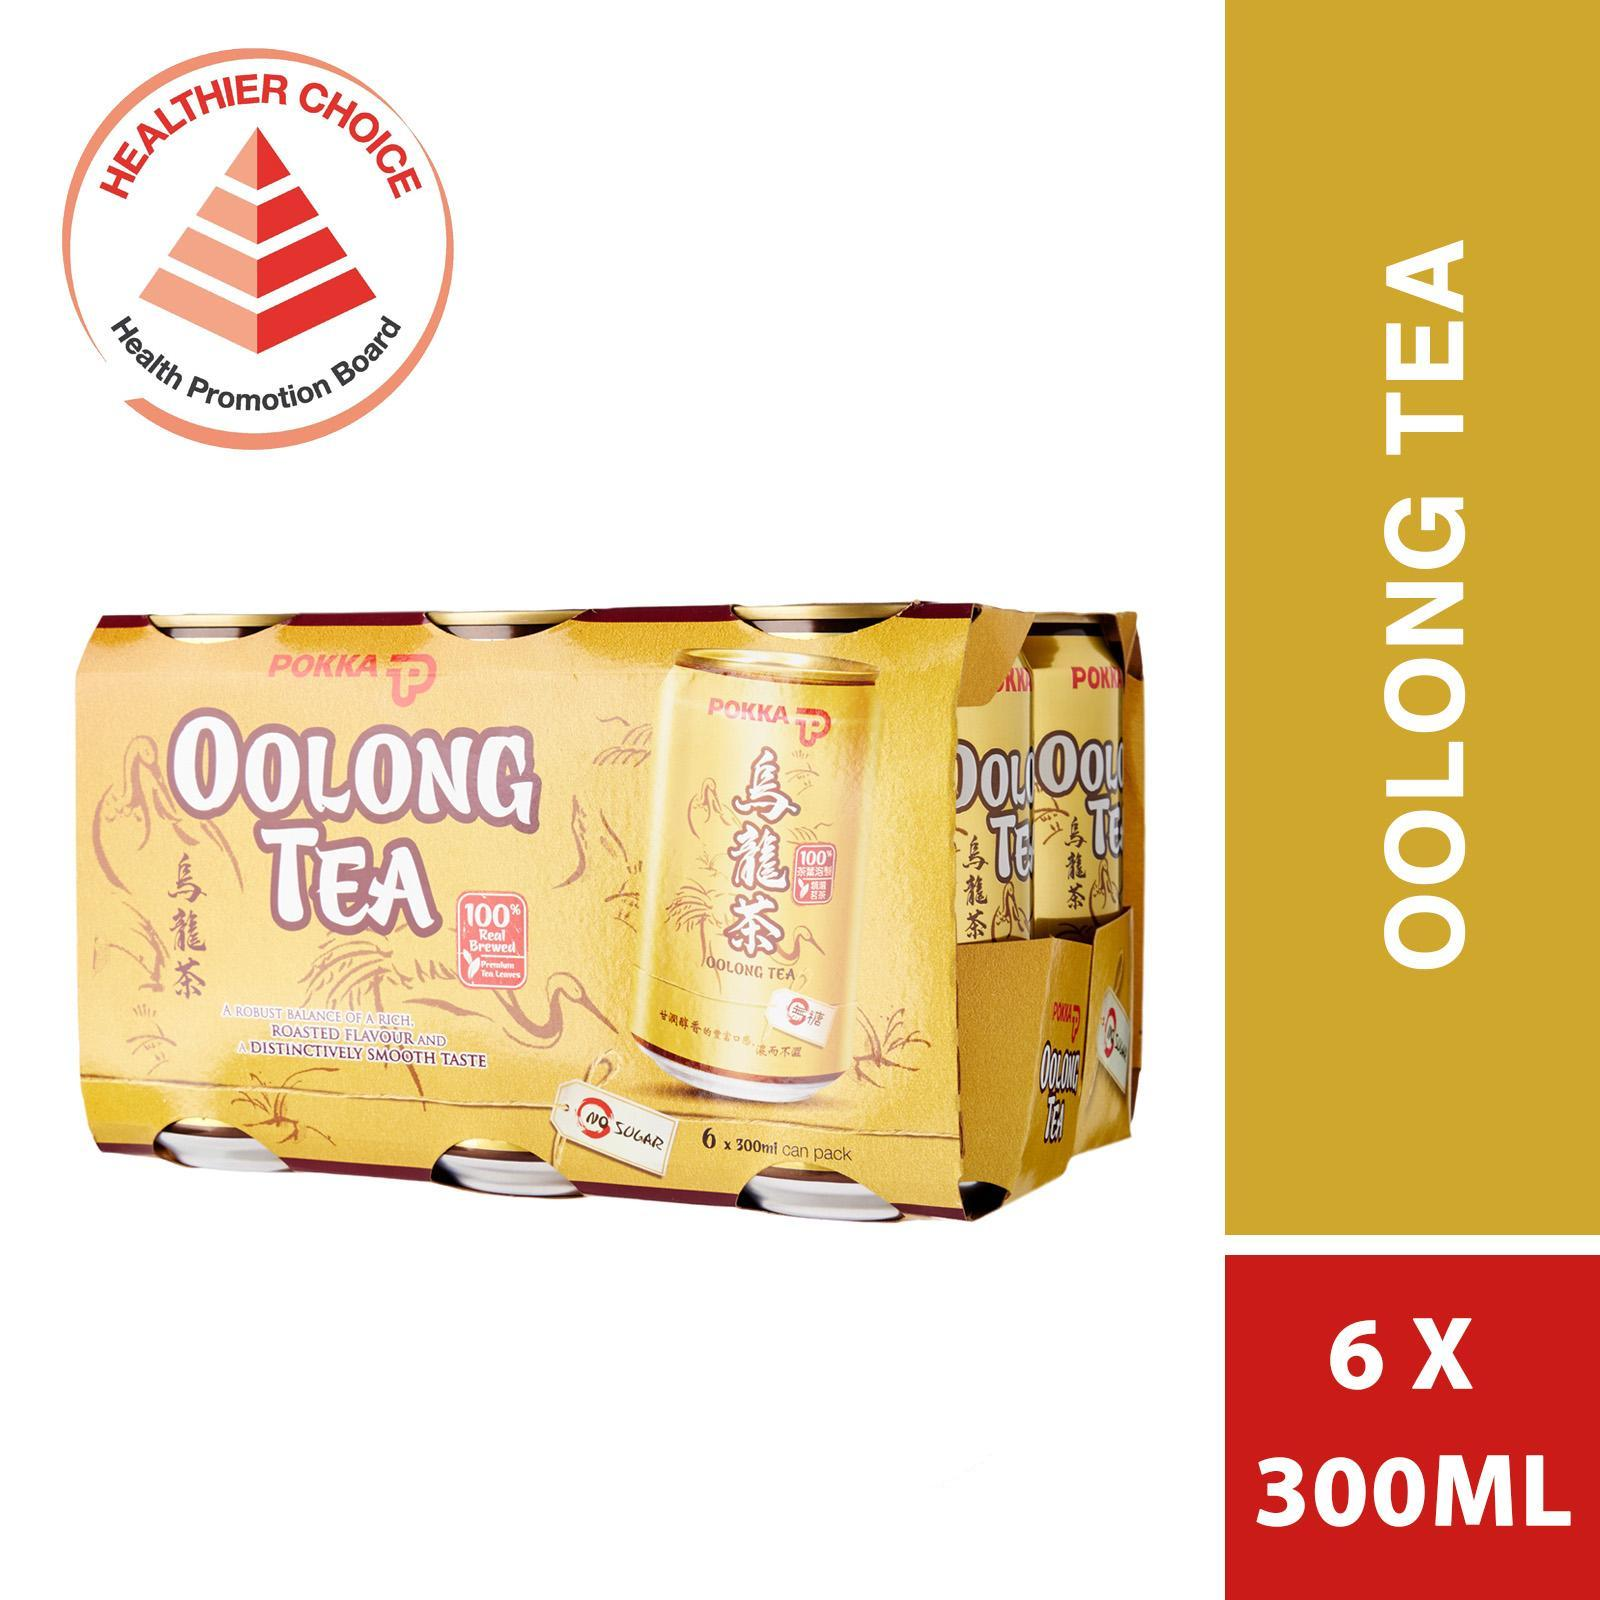 POKKA Jasmine Green Tea - No Sugar 6sX300ml